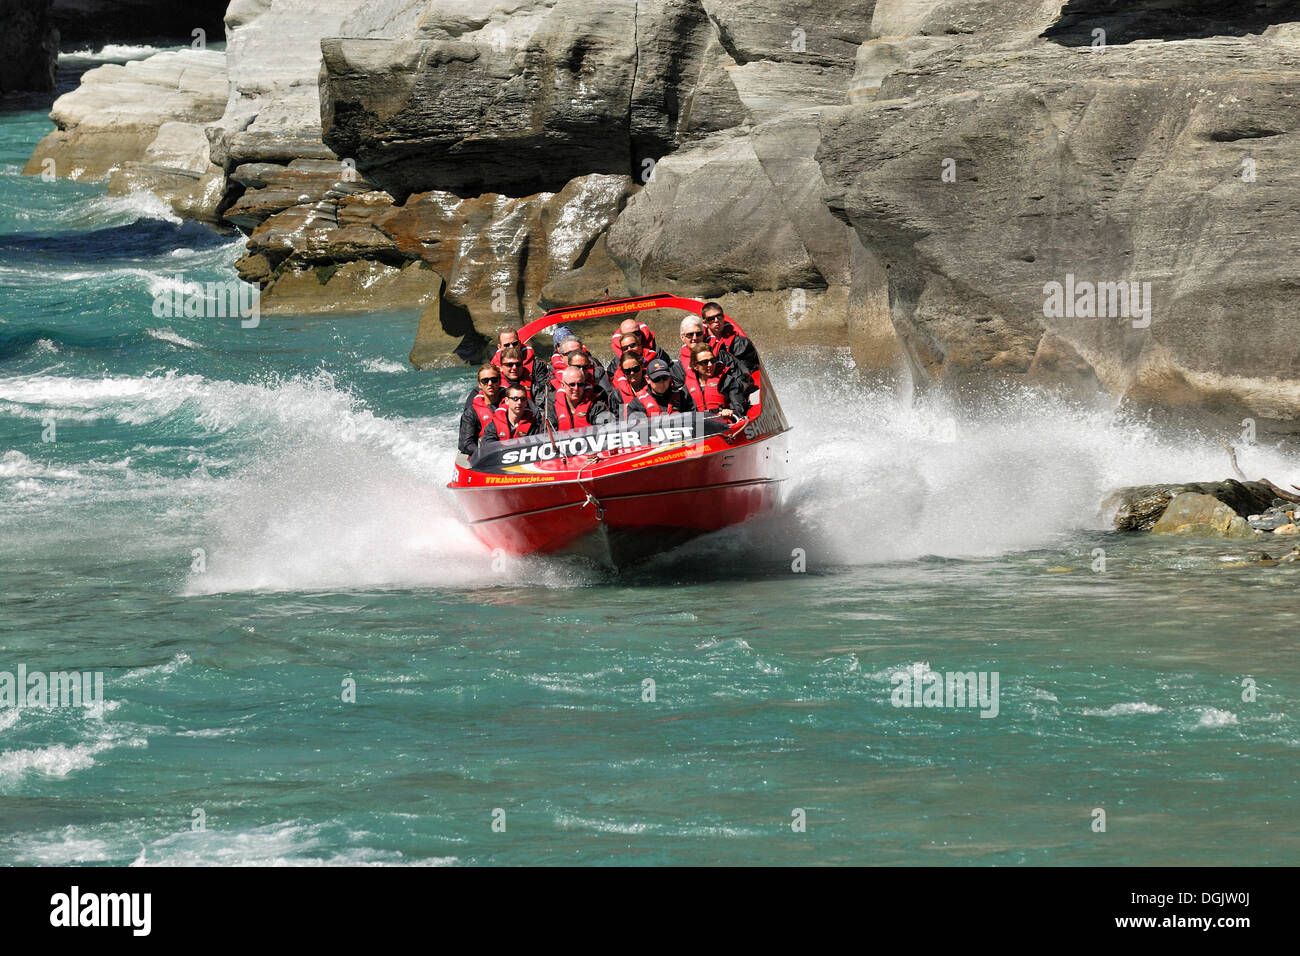 Jet boat, speed boat on Shotover River, Queenstown, South Island, New Zealand - Stock Image